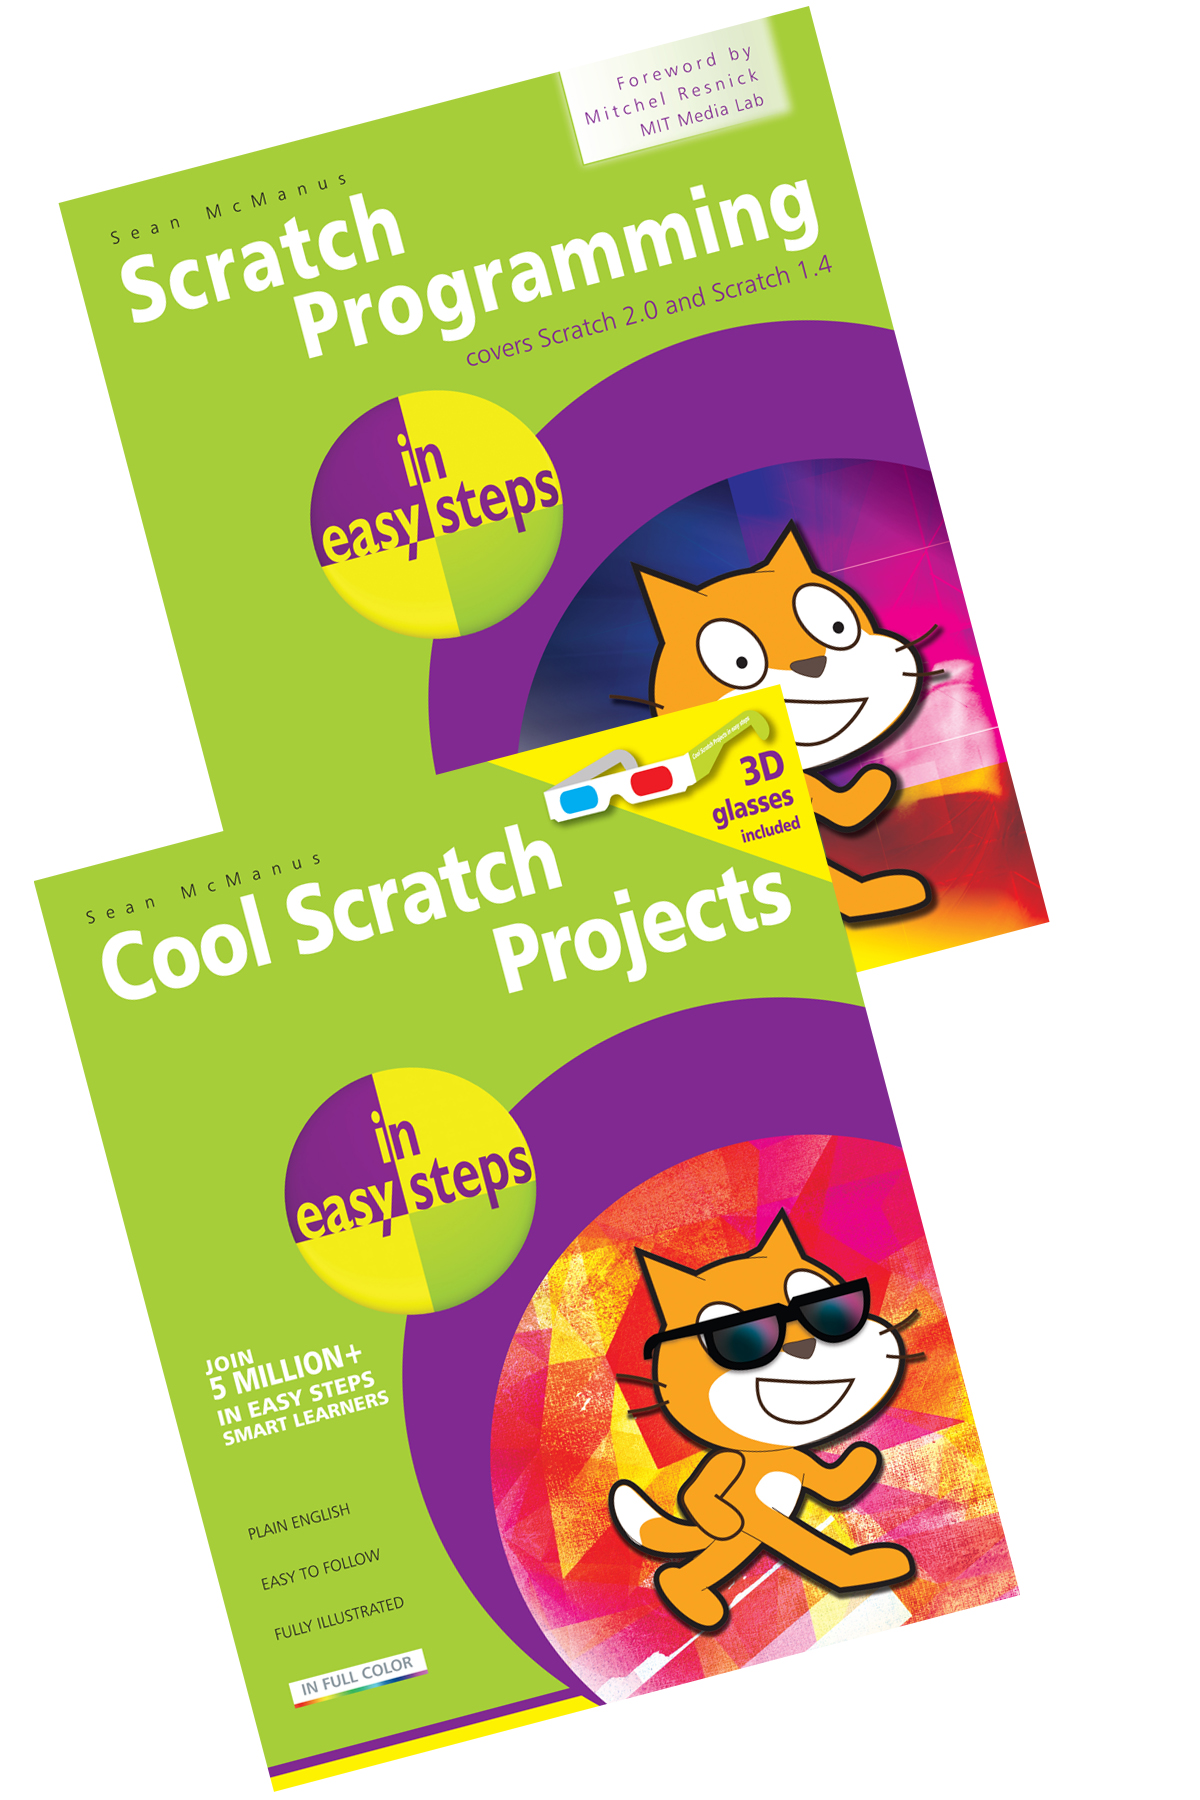 Scratch Programming in easy steps + Cool Scratch Projects in easy steps